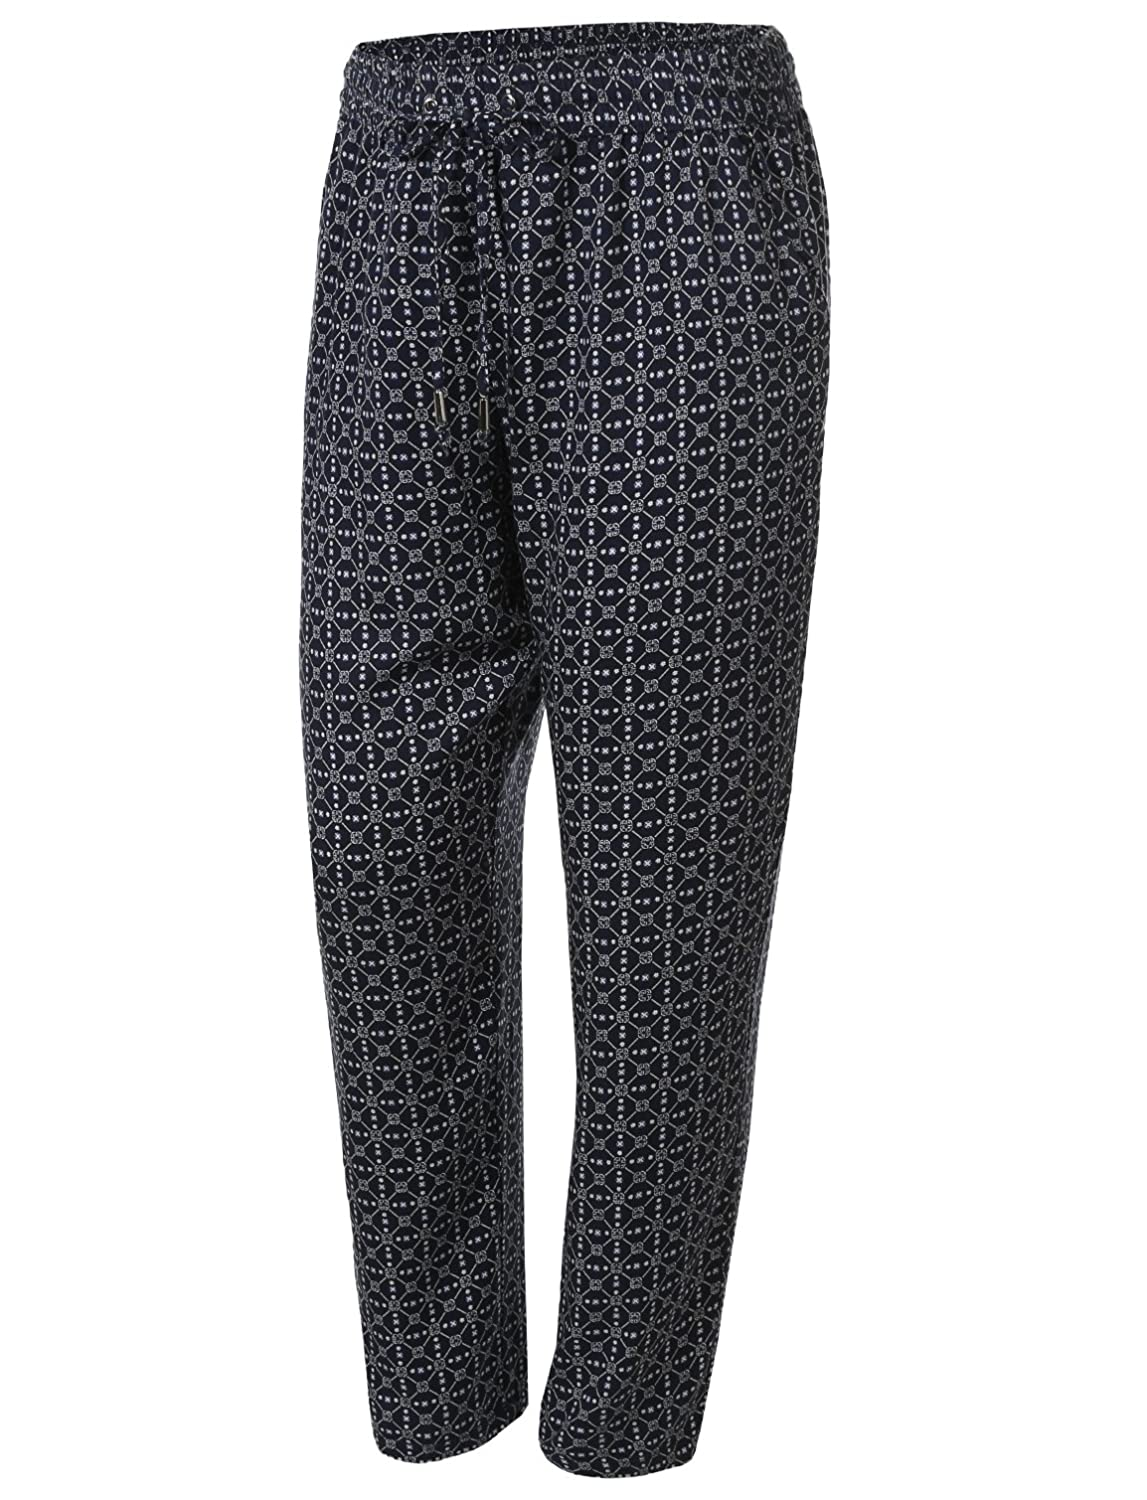 Style&co. Women's Lightweight Printed Tapered Pant